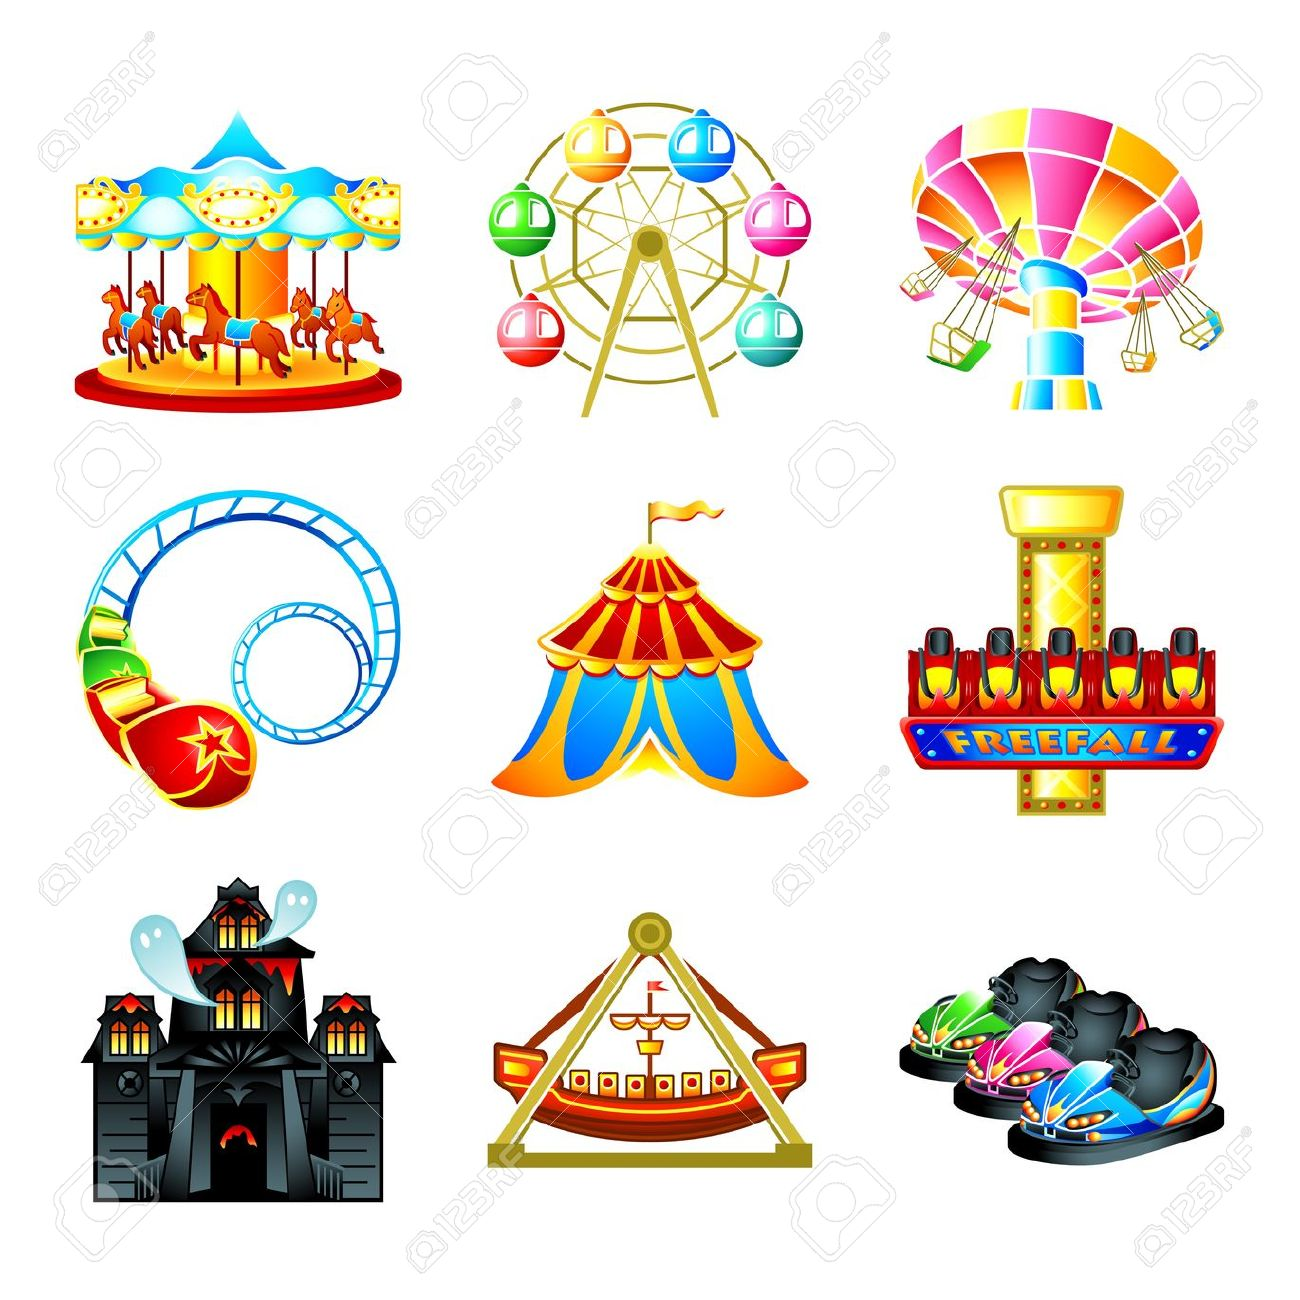 Amusement Park clipart fair game Clipart Rides ride clipart Collection